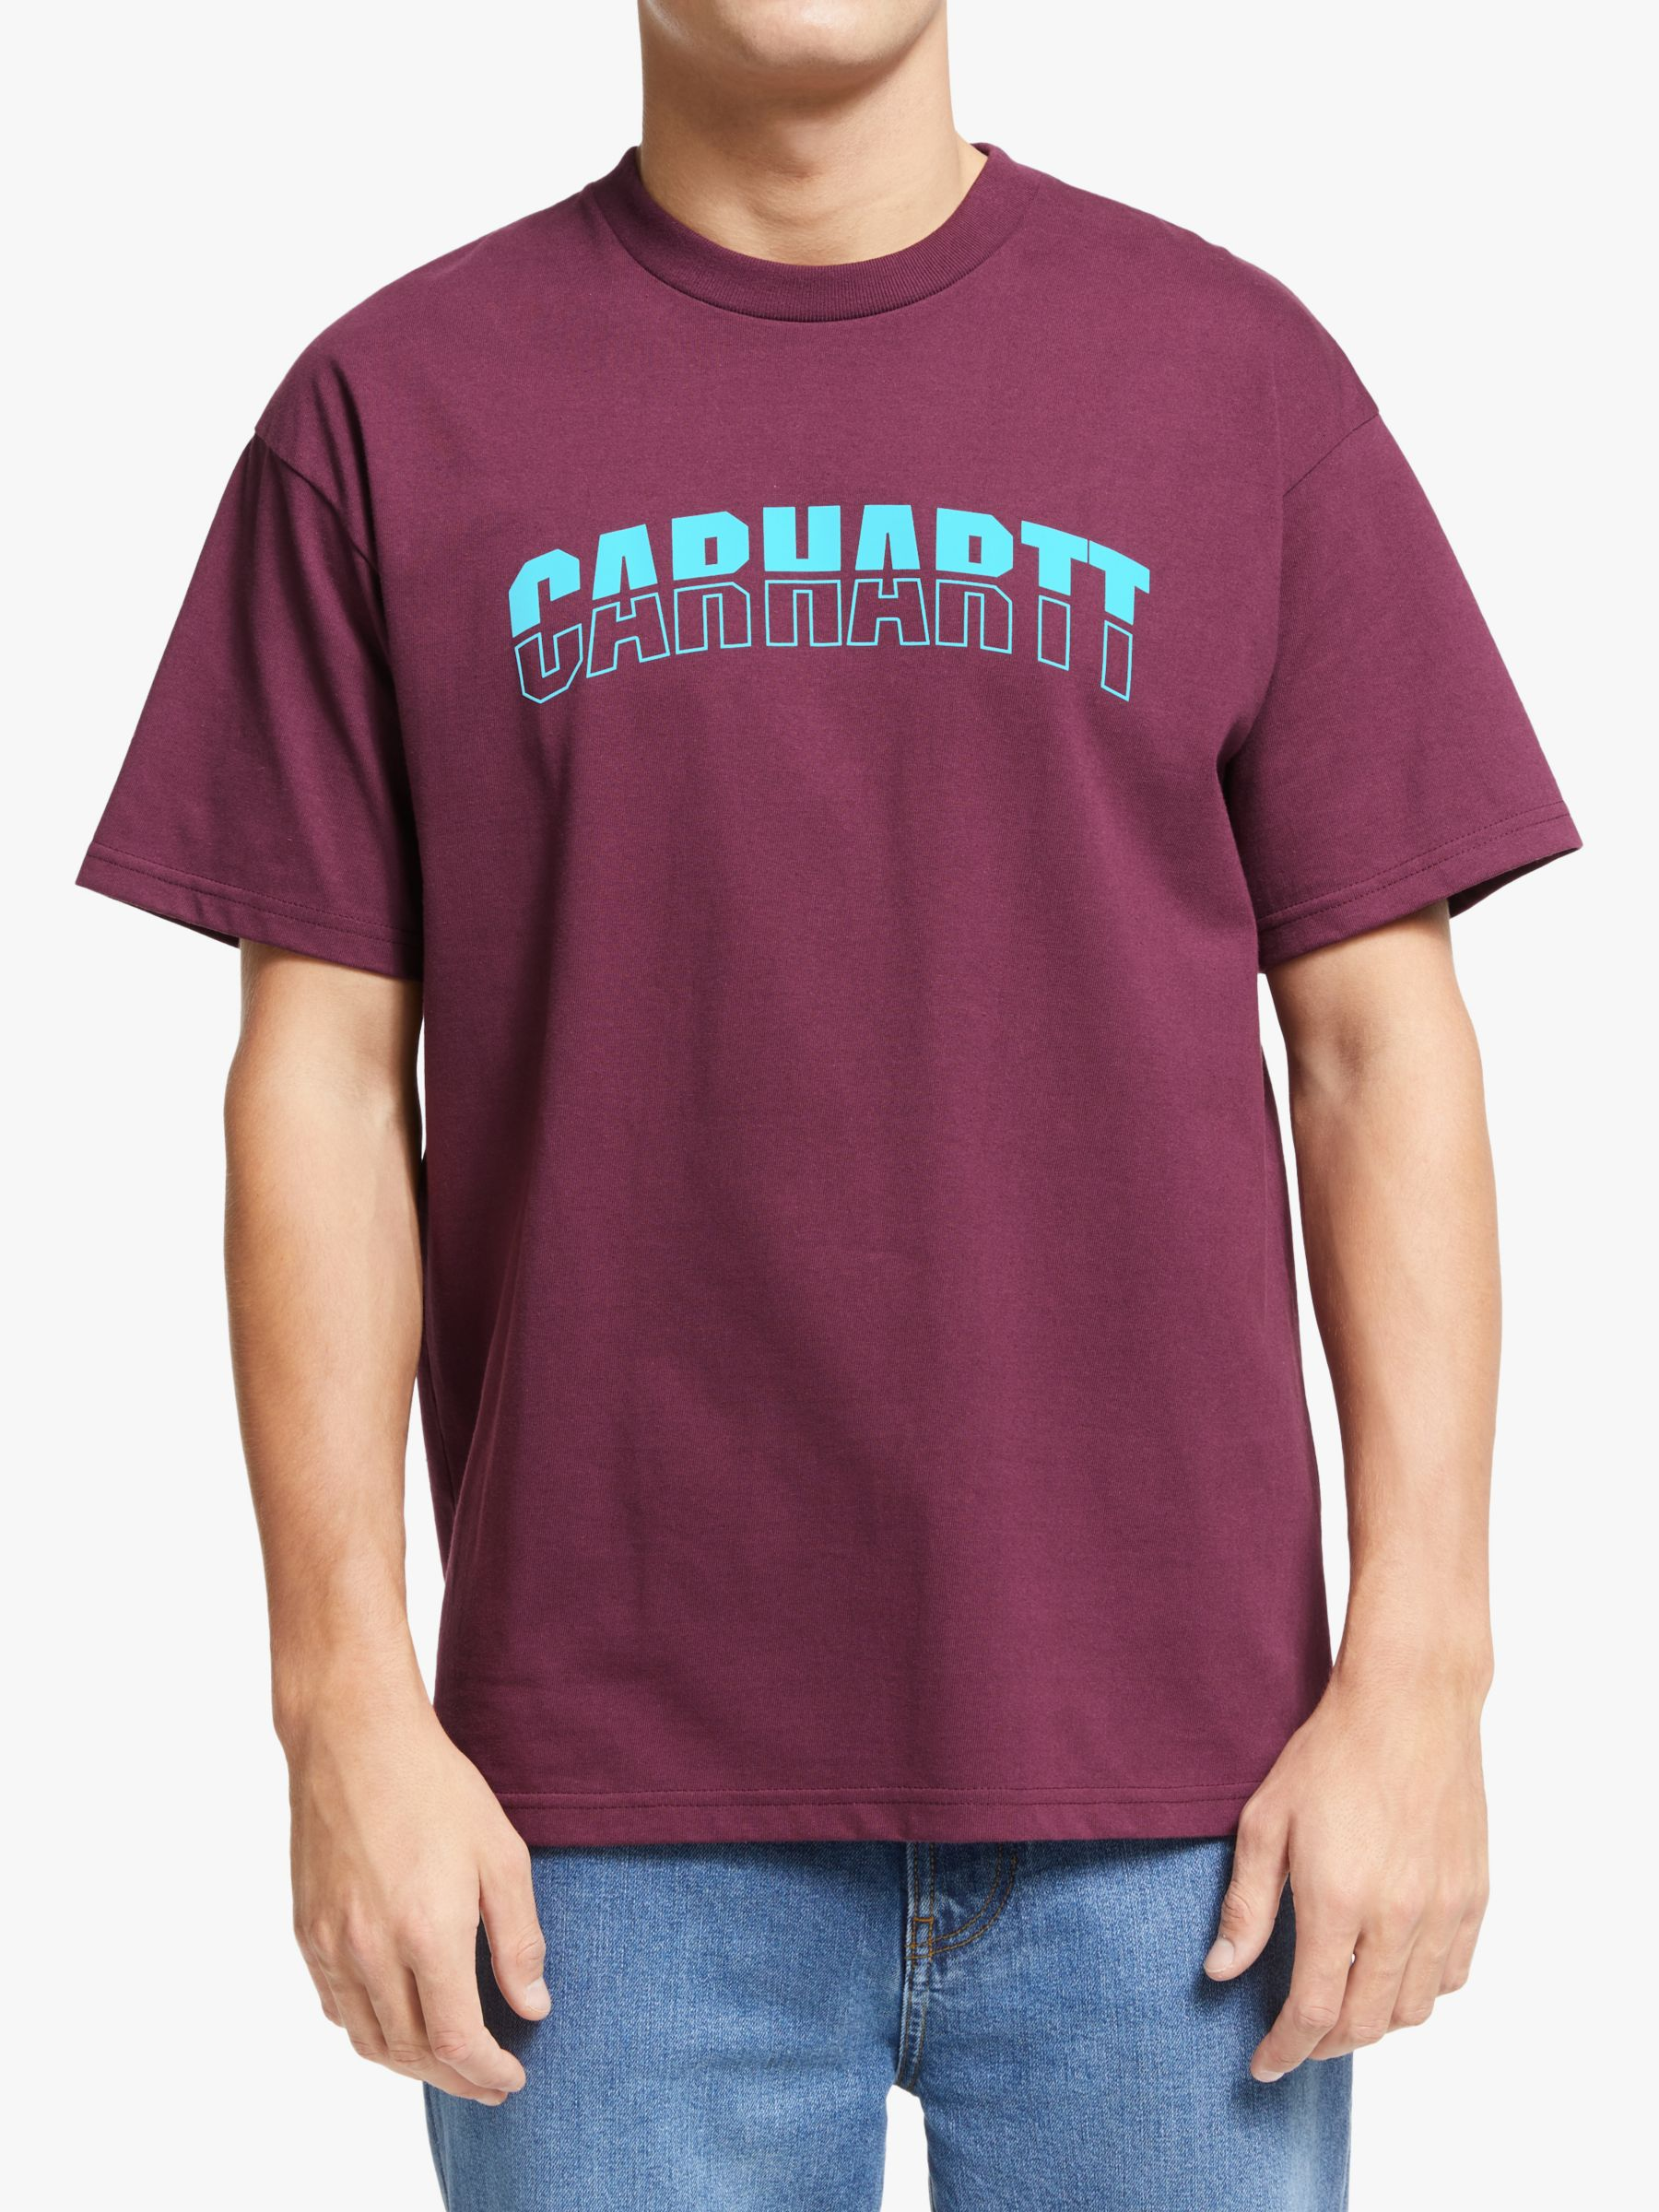 Carhartt WIP Carhartt WIP District Logo T-Shirt, Shiraz